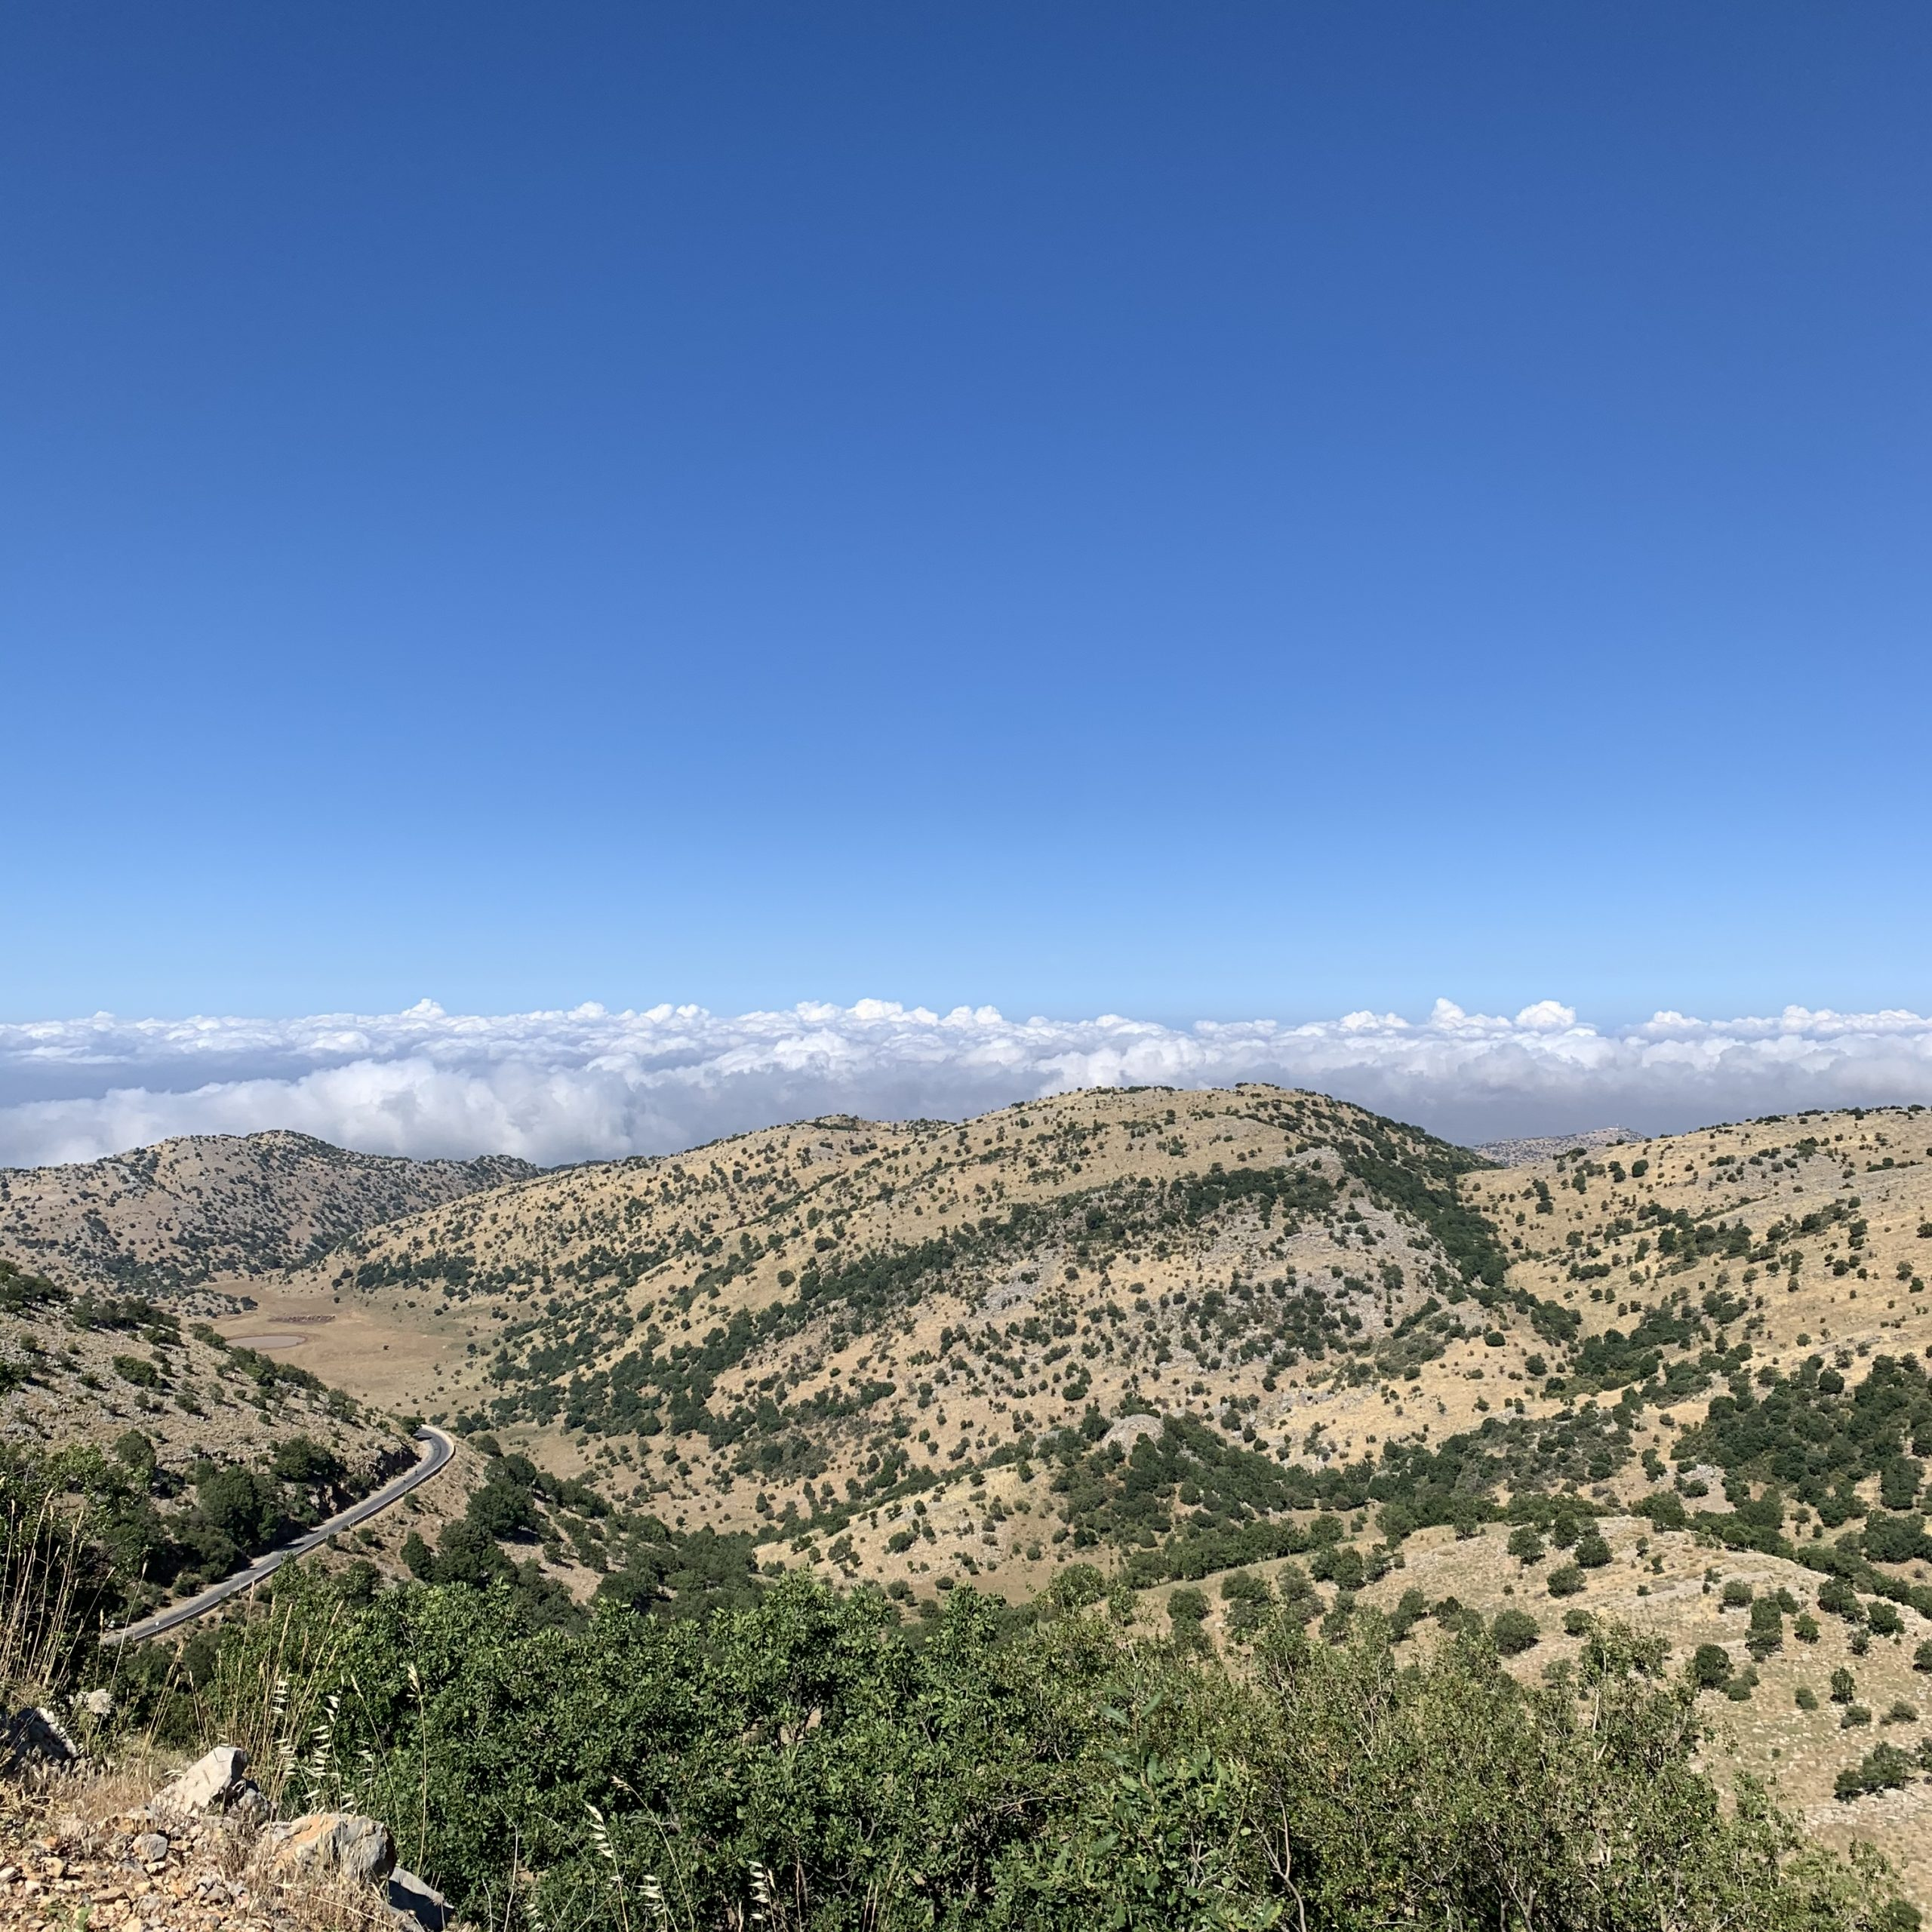 View looking out westwards from Mt Hermon